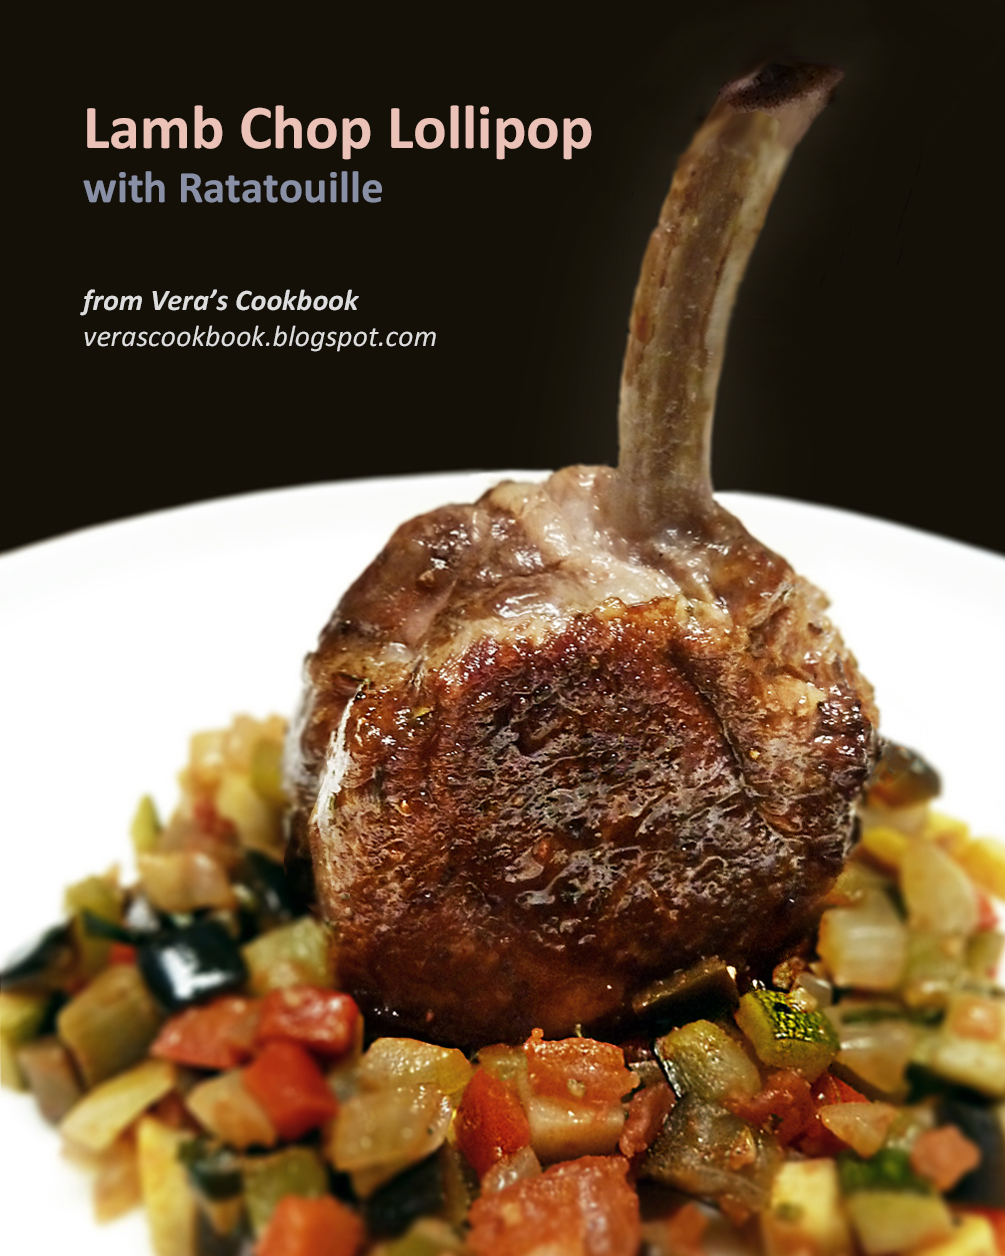 Lamb Chop Lollipop with Ratatouille | Vera's Cookbook